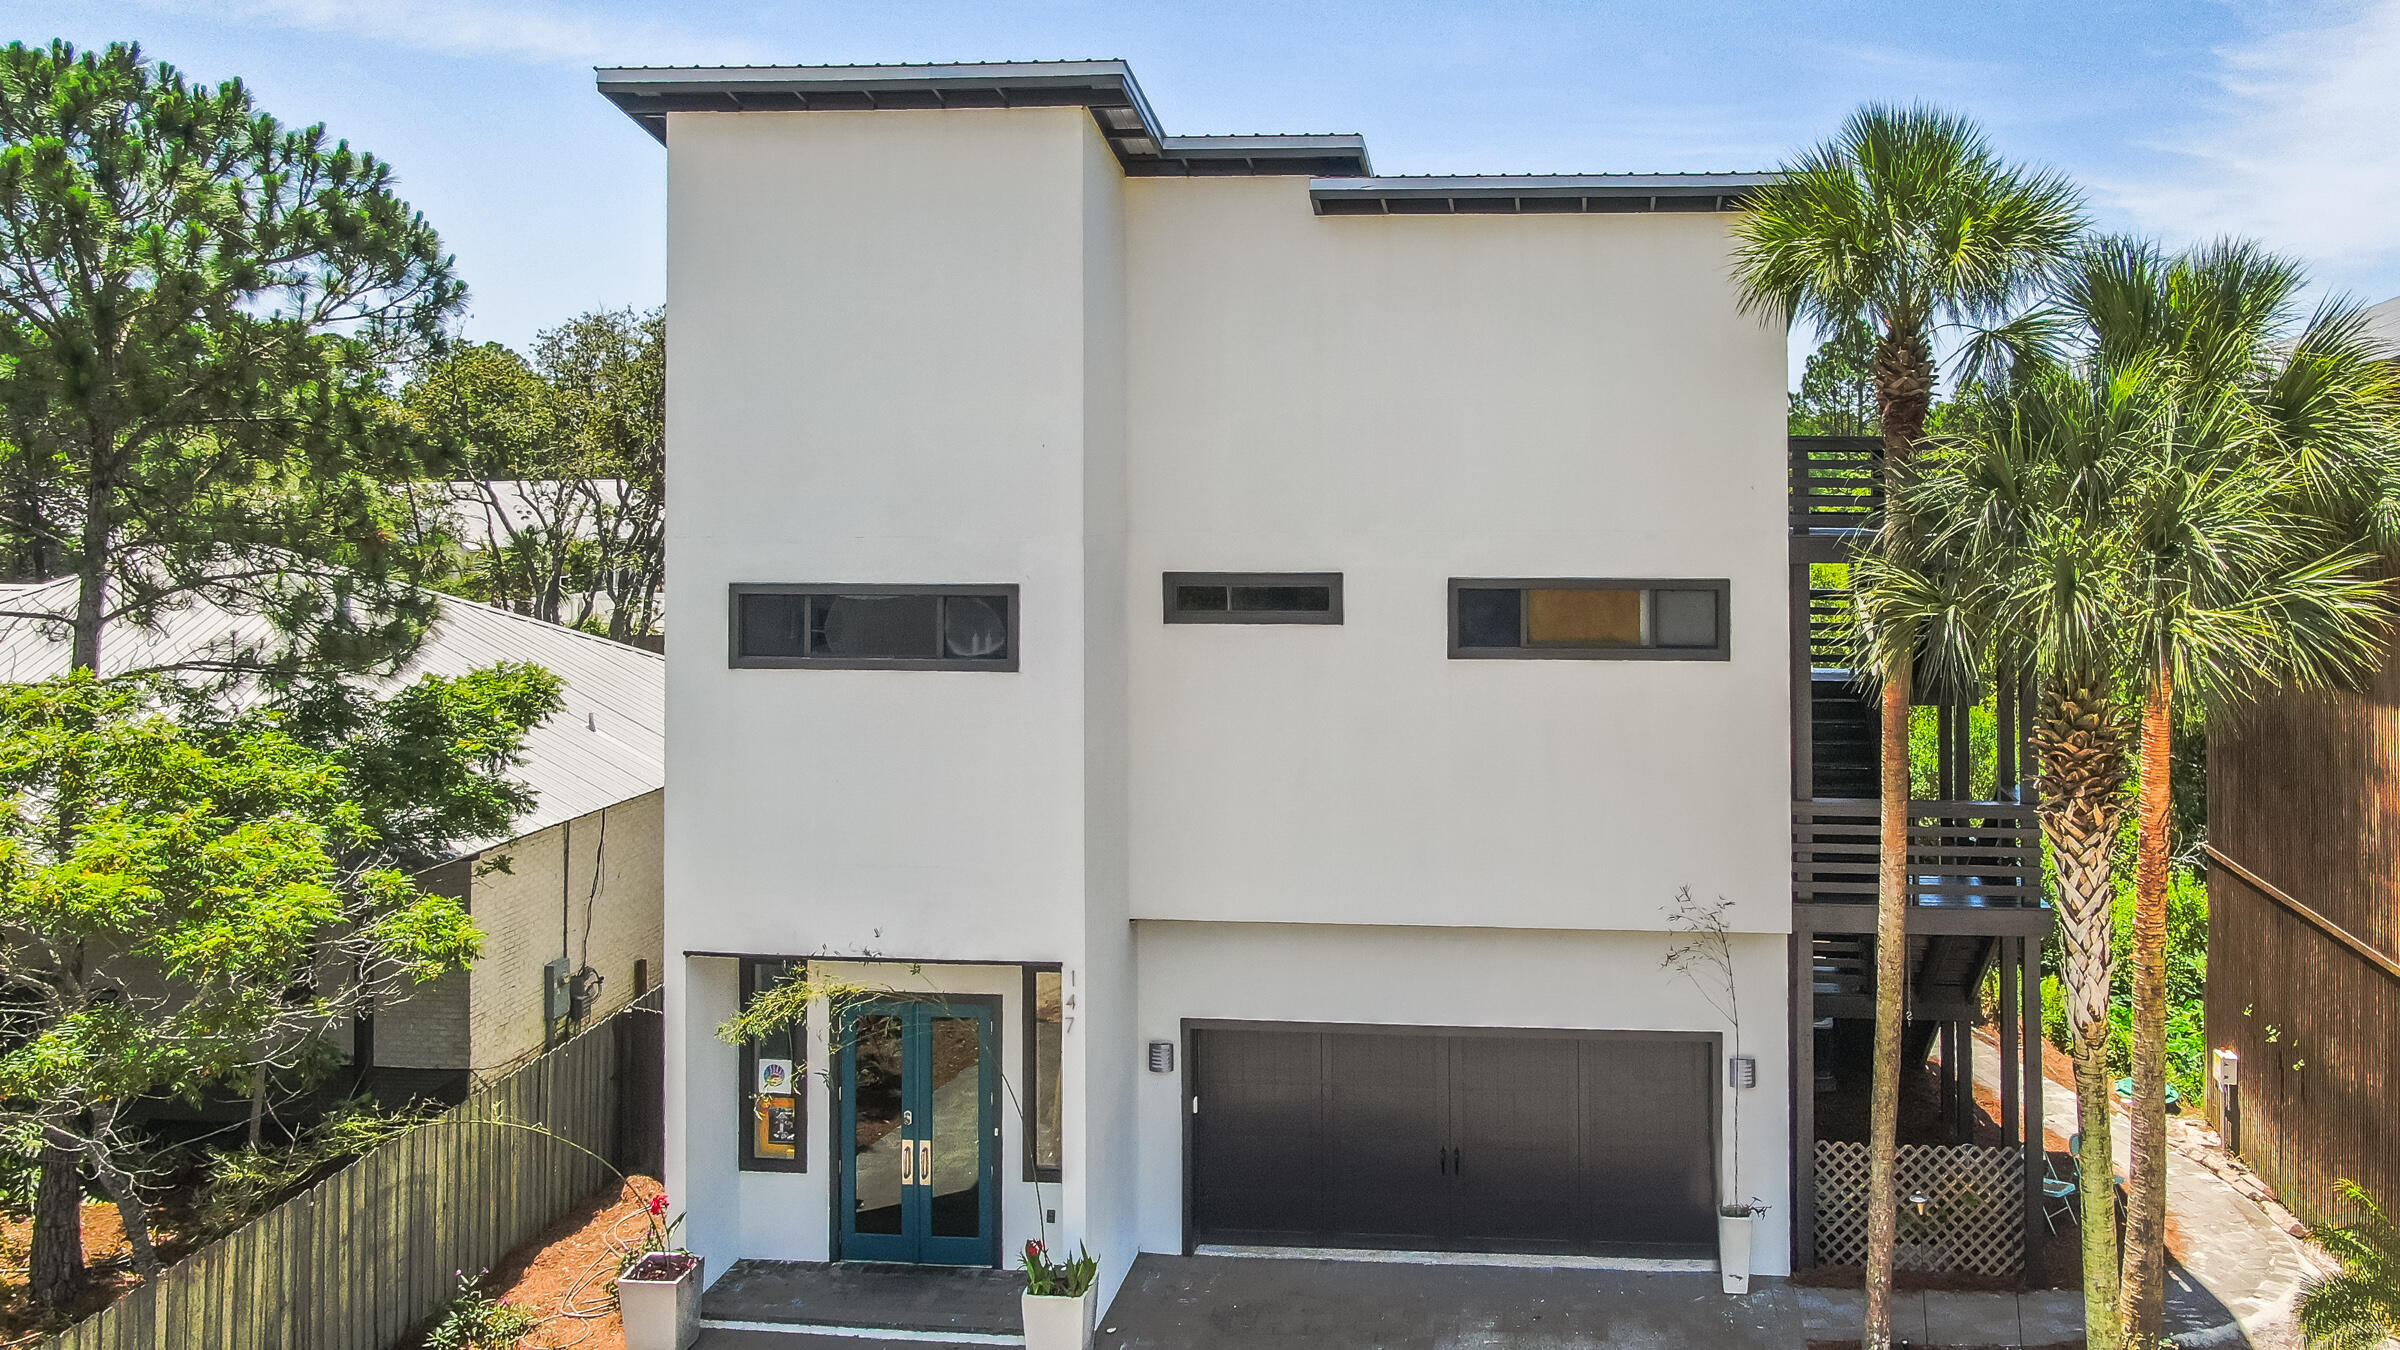 Incredible opportunity to own a Village Mix Use zoned home in the heart of Grayton beach with No HOA. Walk every morning to Black Bear, shuttle to Seaside,  or Red Bar 5 min/1 mile away. This home stands apart from others with ability to use each floor as a LT rental, or have a beach home with ST rentals, make the first floor a small business and live above or allowing a family to use each floor uniquely for their own home.  The 3rd floor is only accessible via the stairwell on outside of house, allowing a separate office area but it is not included in square footage, it will take minor adjustments to connect for bathroom, but it is finished with H&A, floor, drywall and lighting.  The backyard is spacious, room for pool. Cosmetic allowance of $10k given due to delay of contractors.